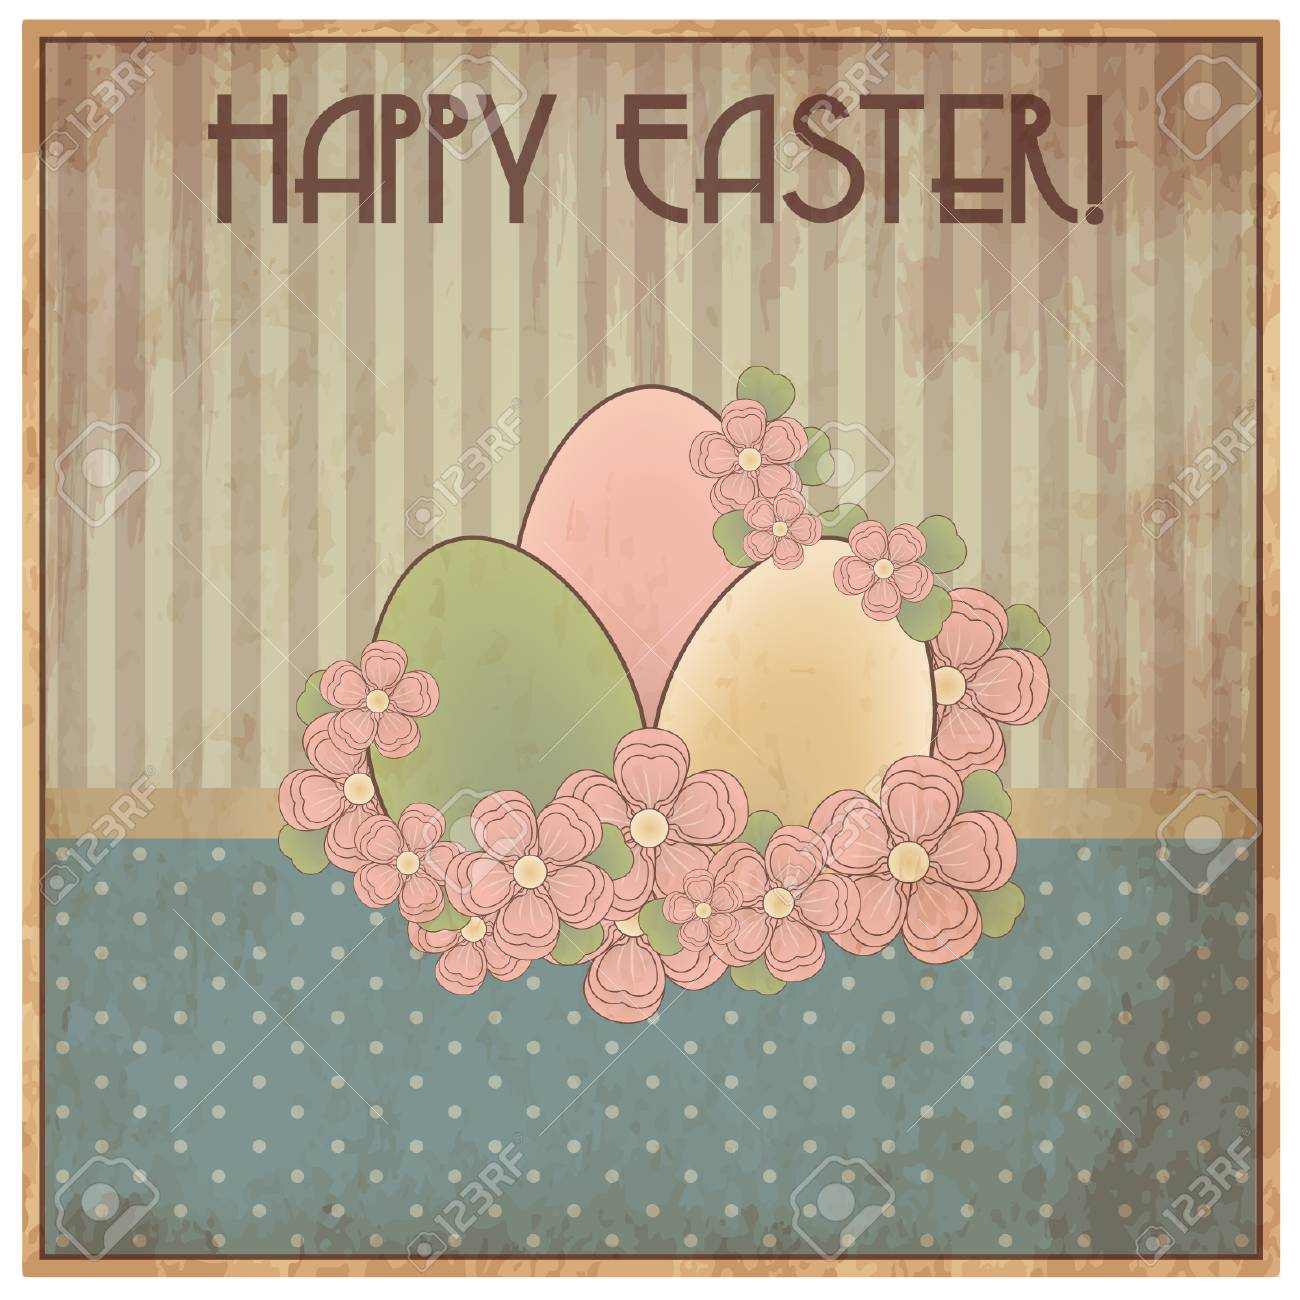 Happy easter old invitation card vector illustration royalty free happy easter old invitation card vector illustration stock vector 38608650 stopboris Choice Image